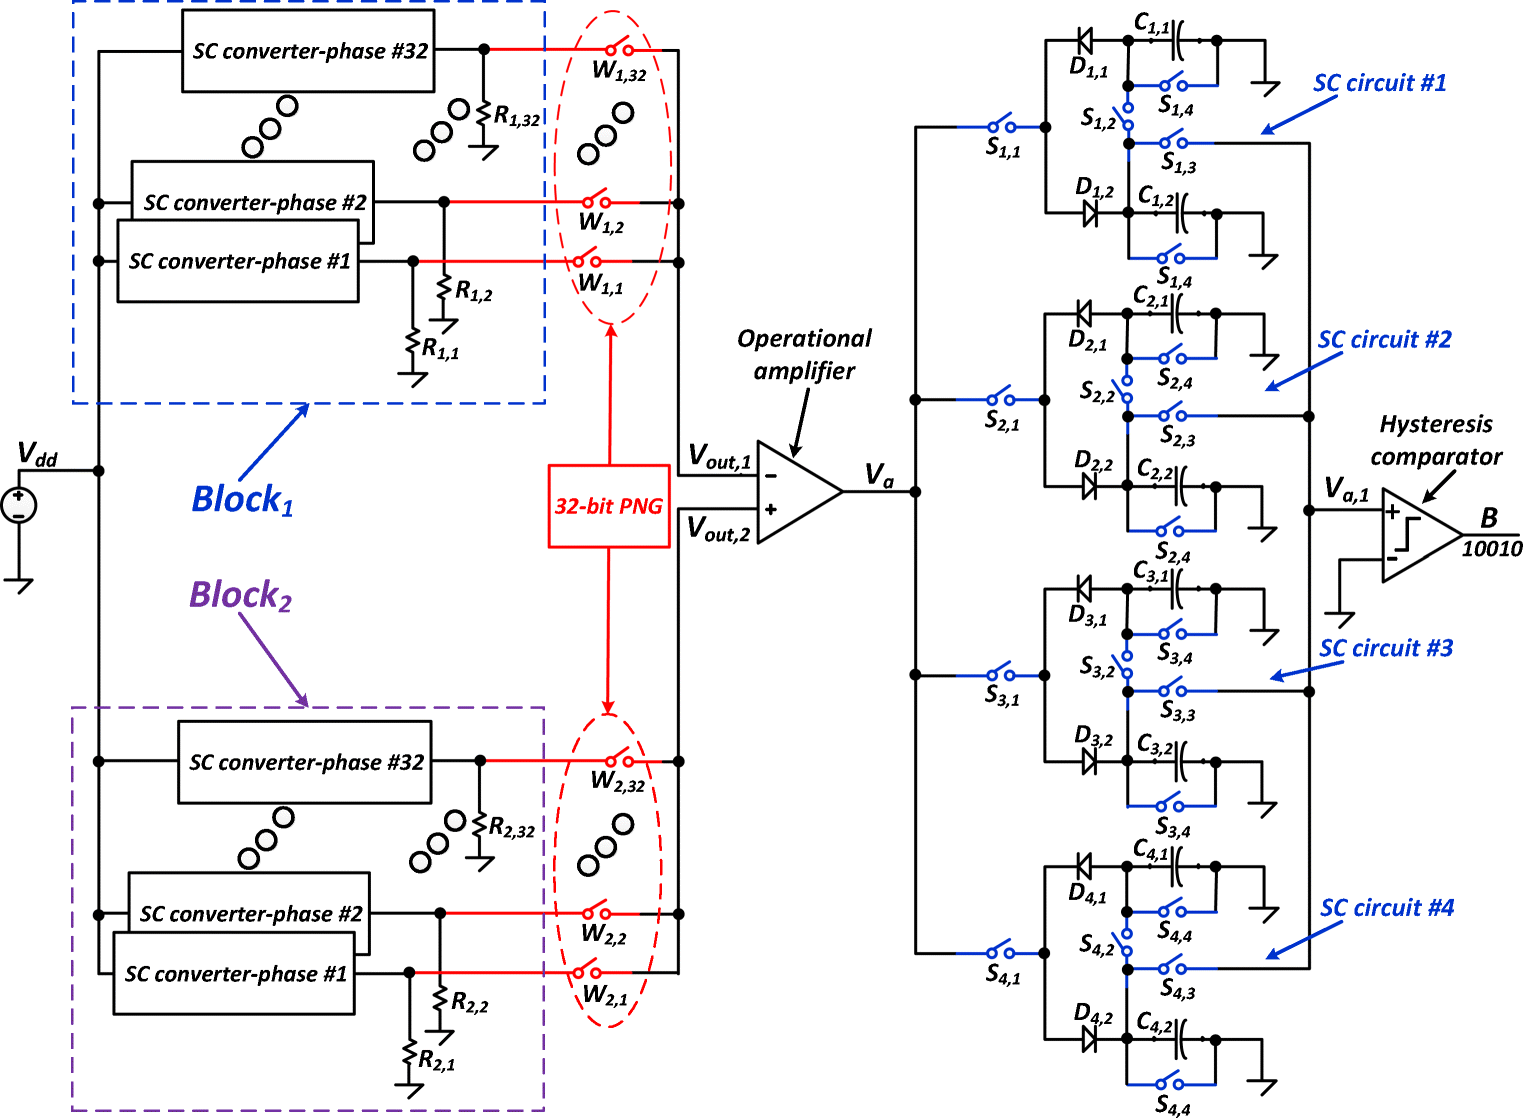 Exploiting Multi Phase On Chip Voltage Regulators As Strong Puf Figure 5 Comparator Circuit With Hysteresis Fig 4